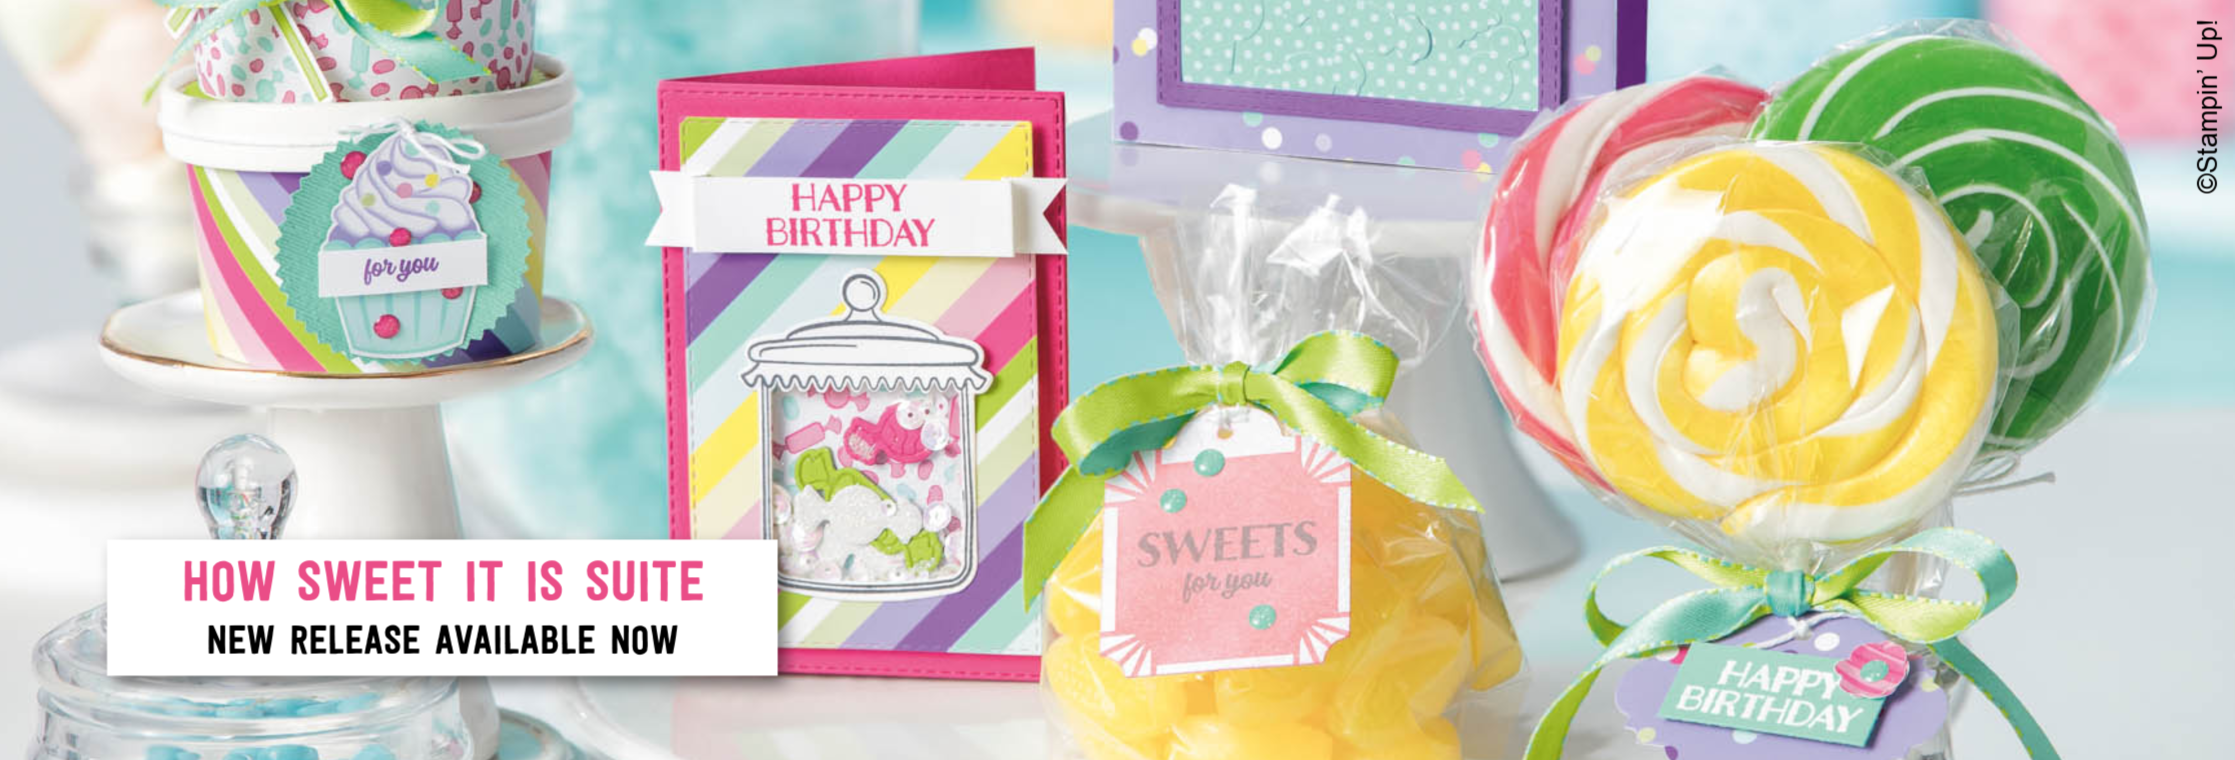 How Sweet It Is Suite from Stampin' Up! - New release for 2019!